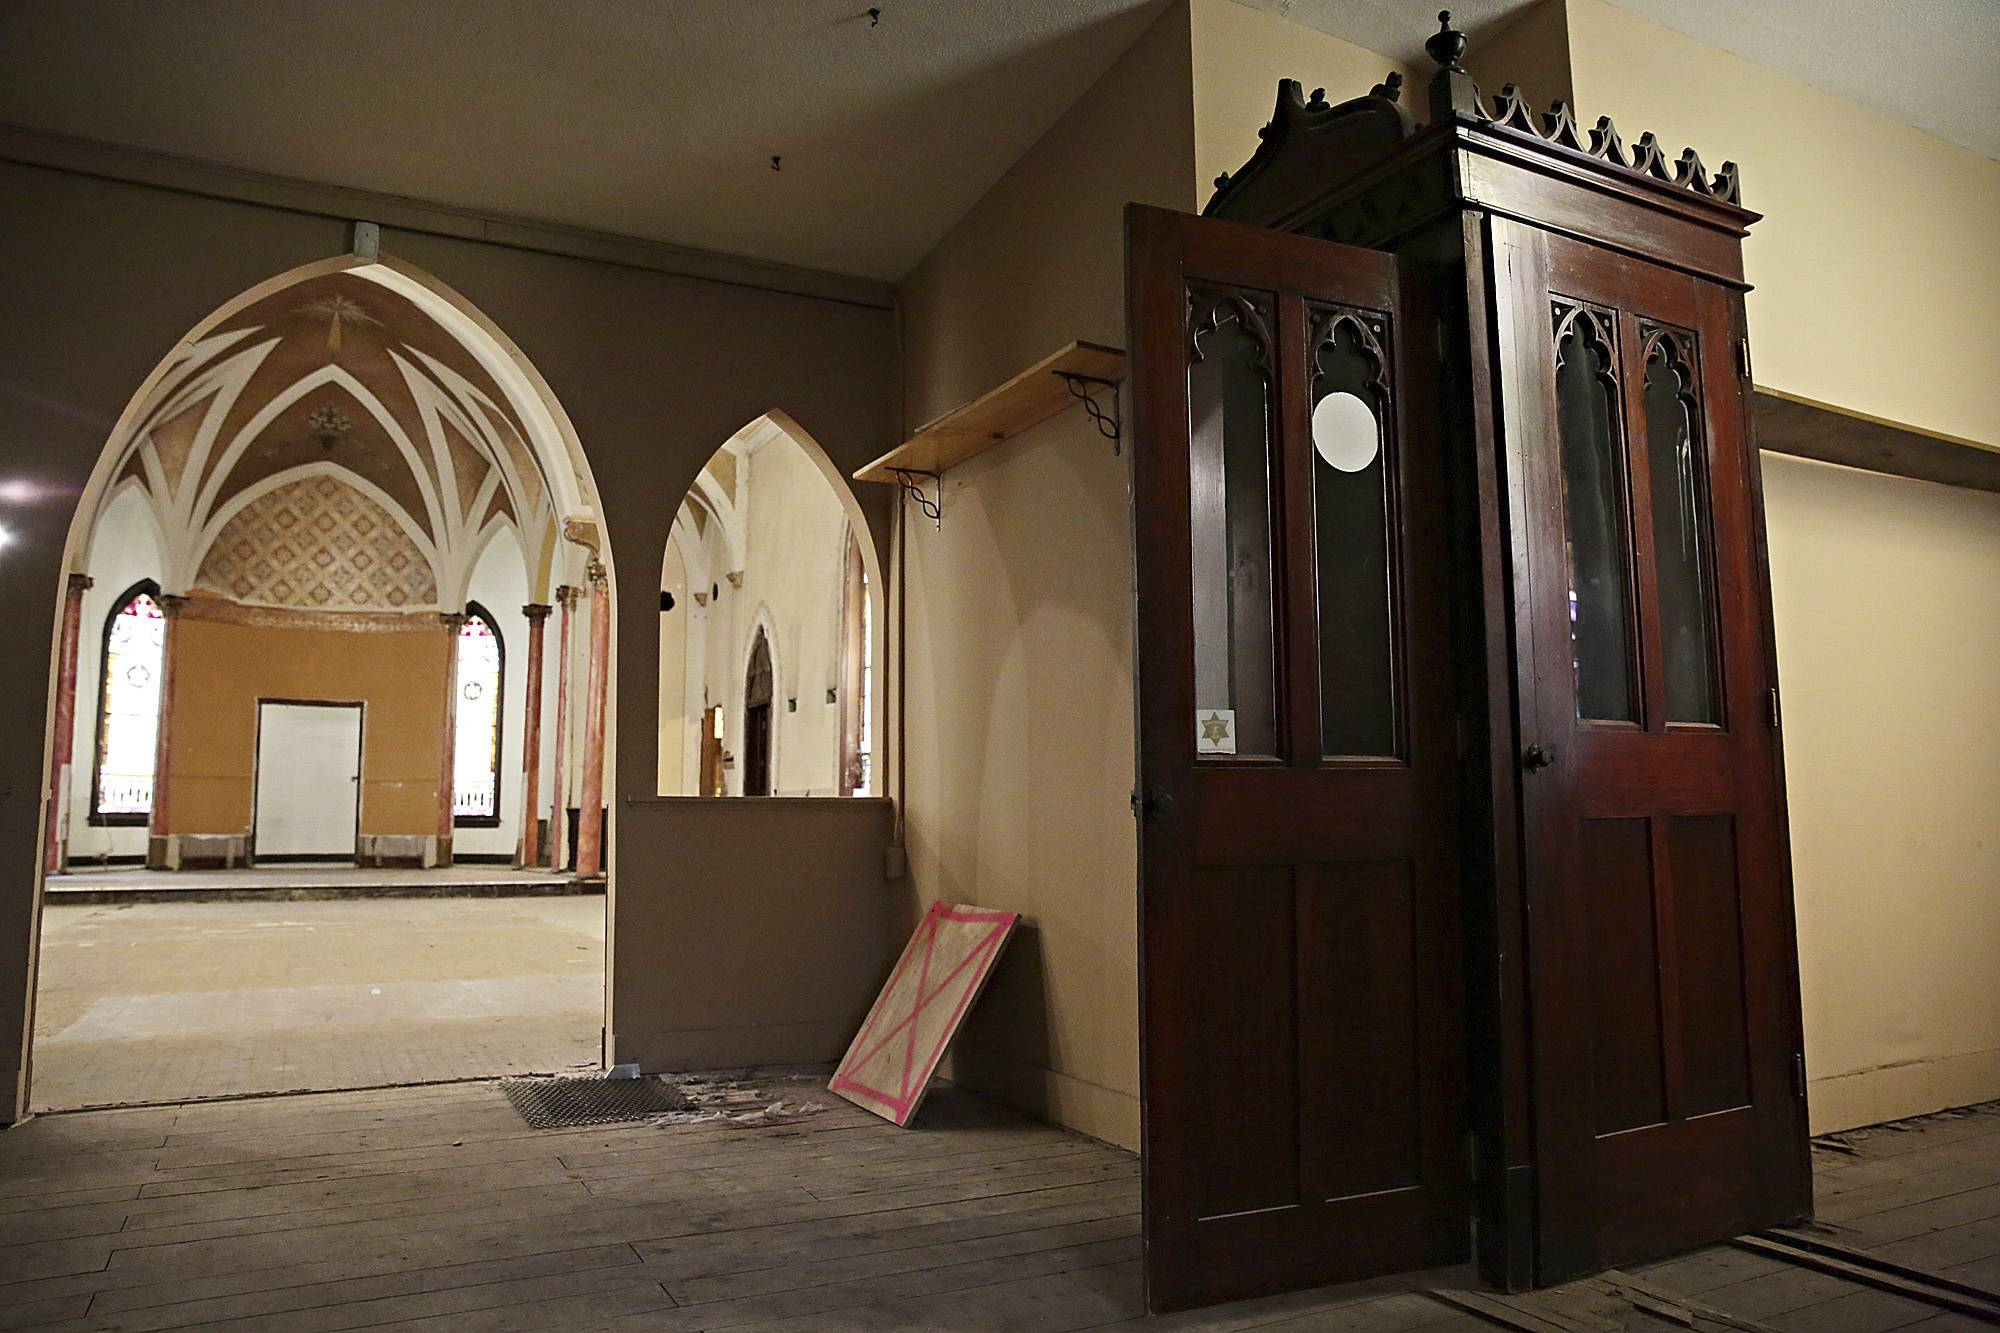 The confessional box inside the dilapidated St. Mary's Catholic Church in Plainfield. The building was acquired by the village and minimally restored. It has attracted interest from potential business developers.